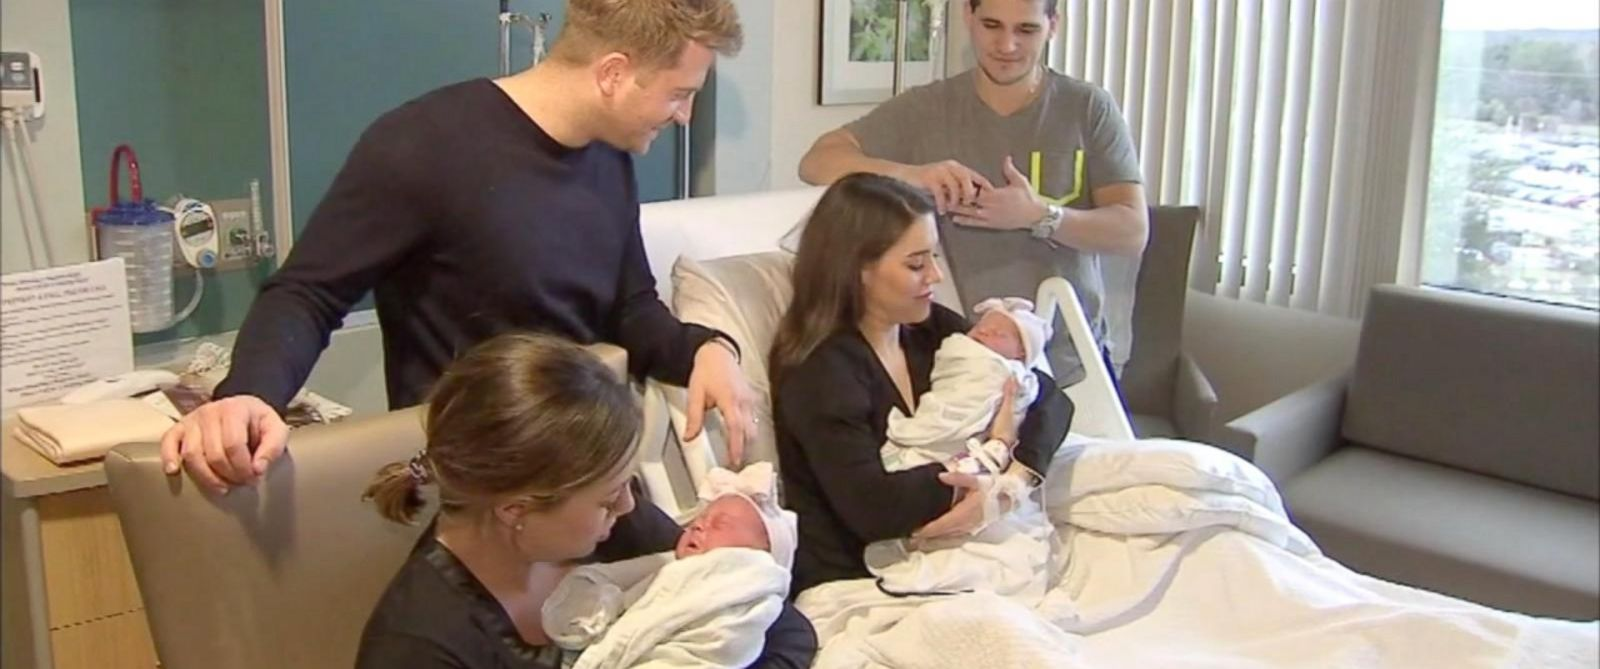 PHOTO:Twin sisters from New Jersey gave birth to their daughters just minutes apart at the same hospital.